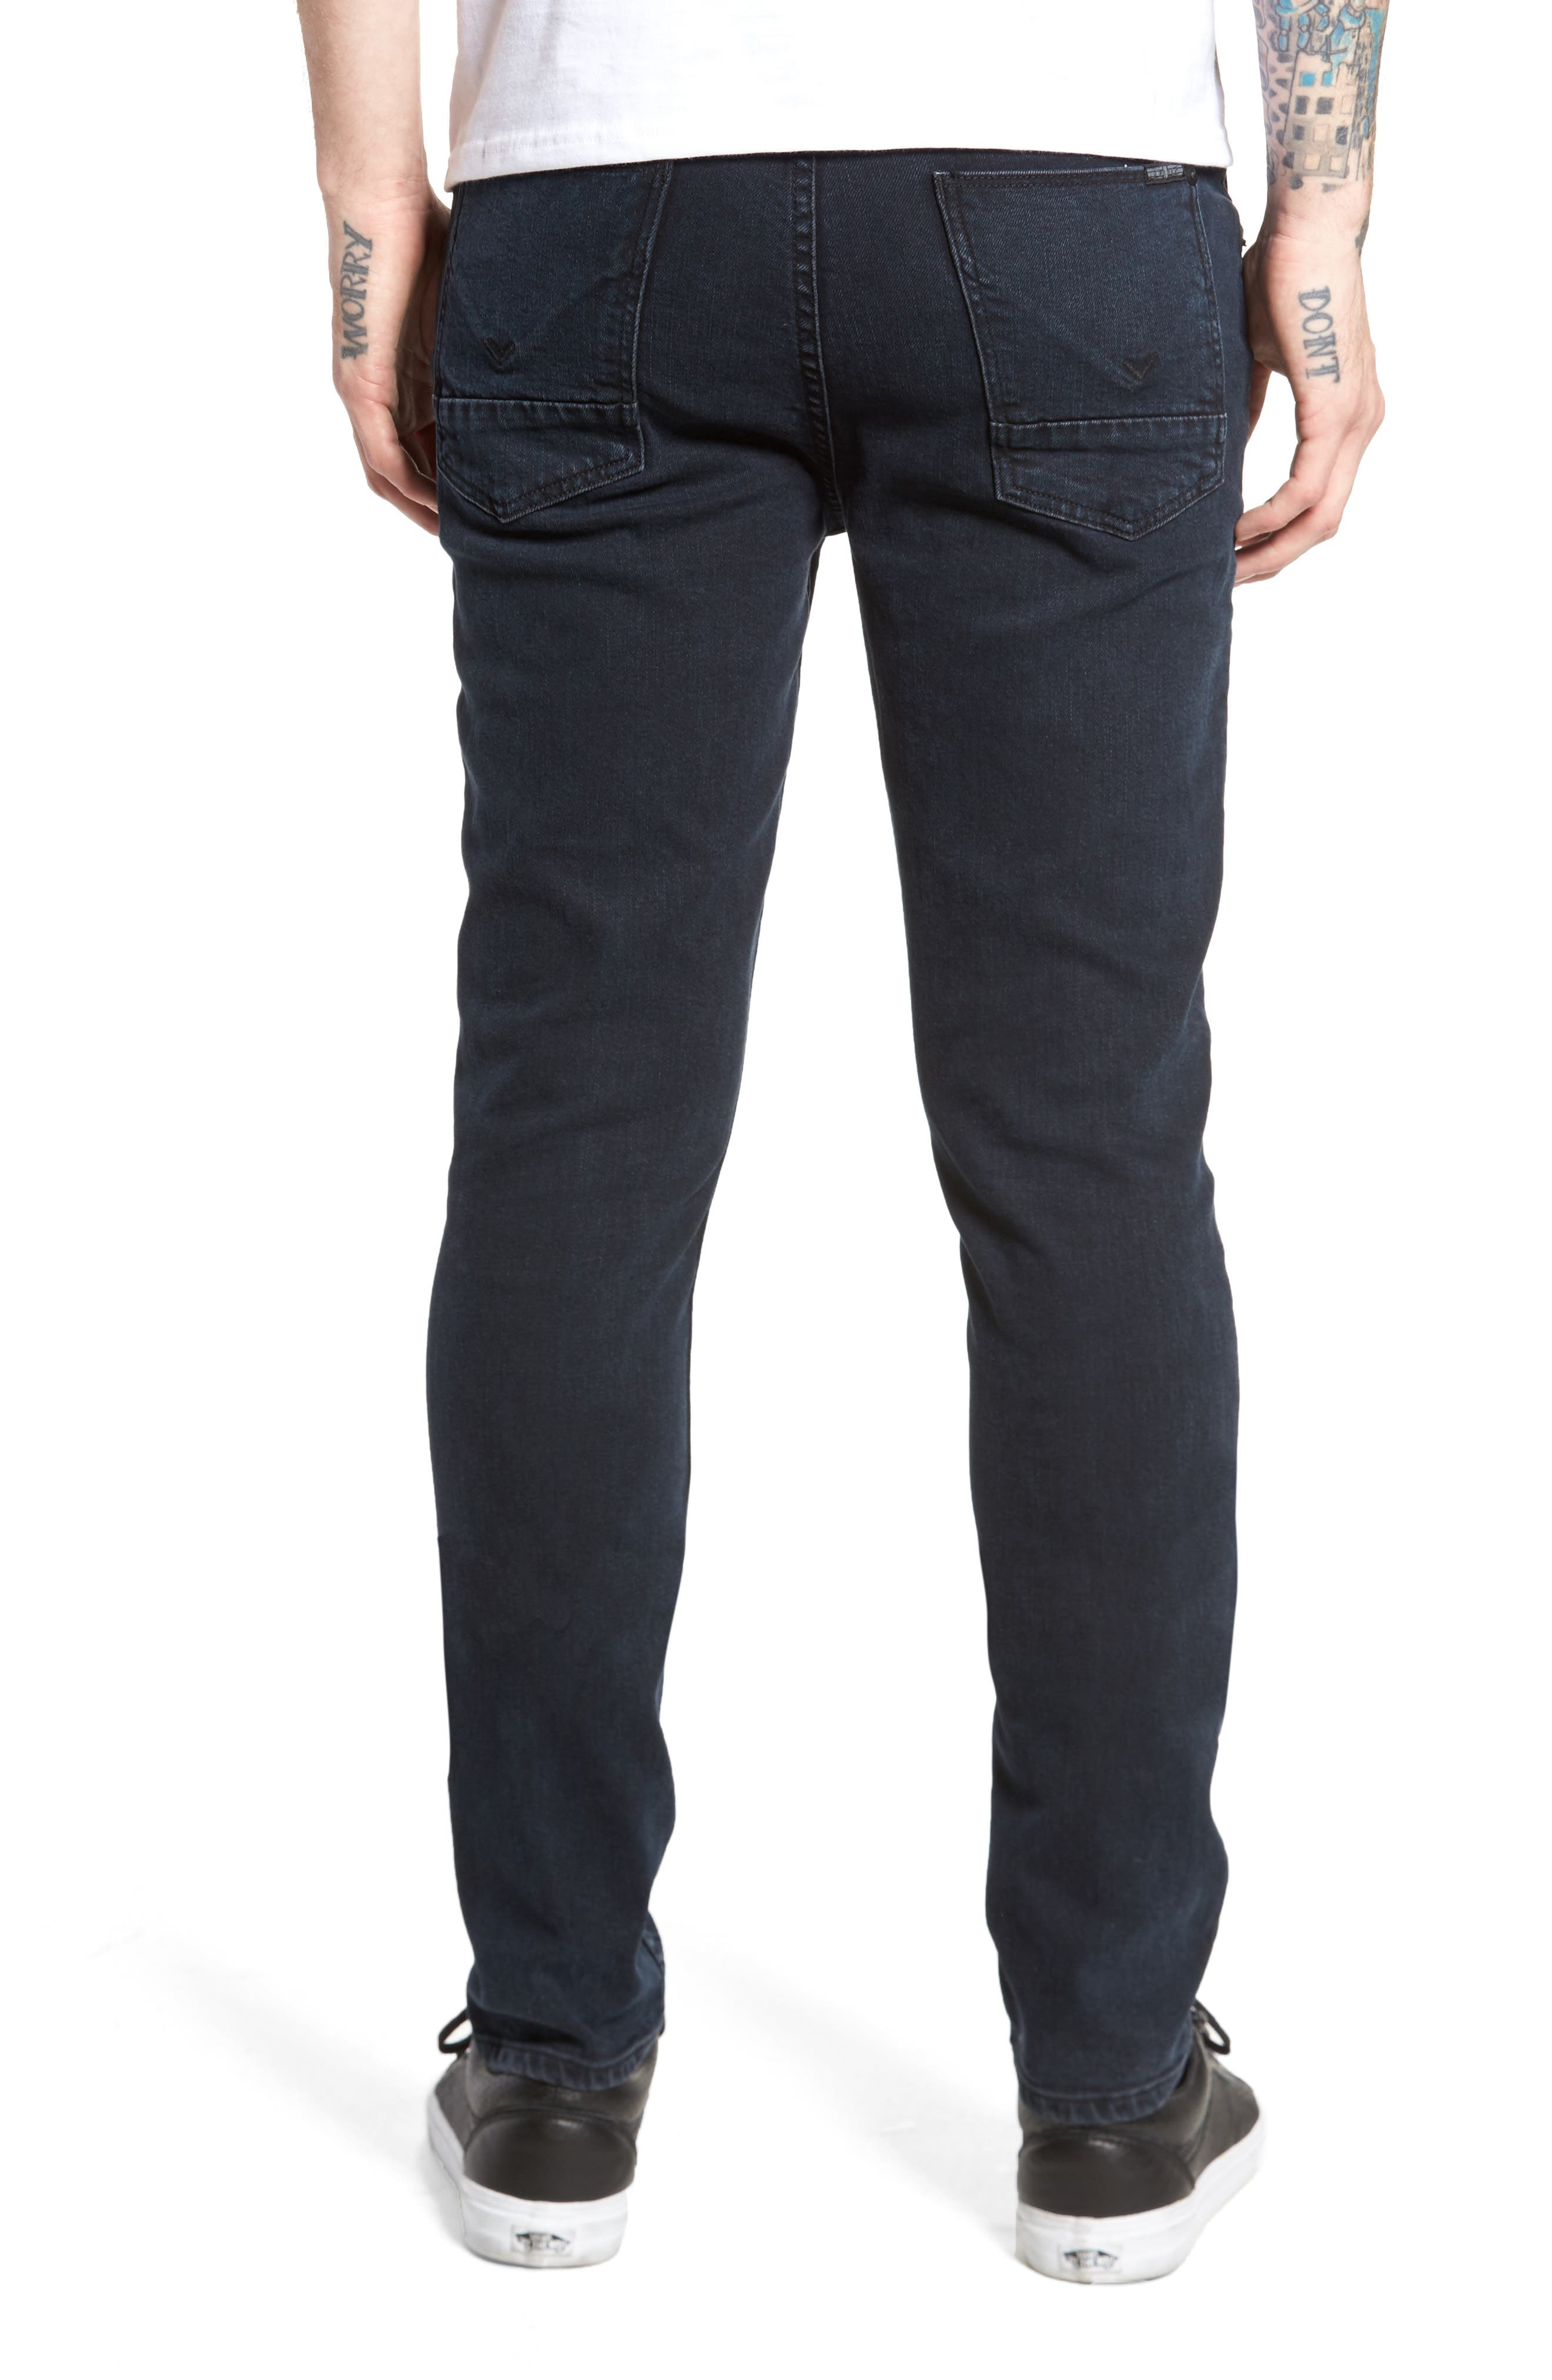 Axl Skinny Fit Jeans,                             Alternate thumbnail 2, color,